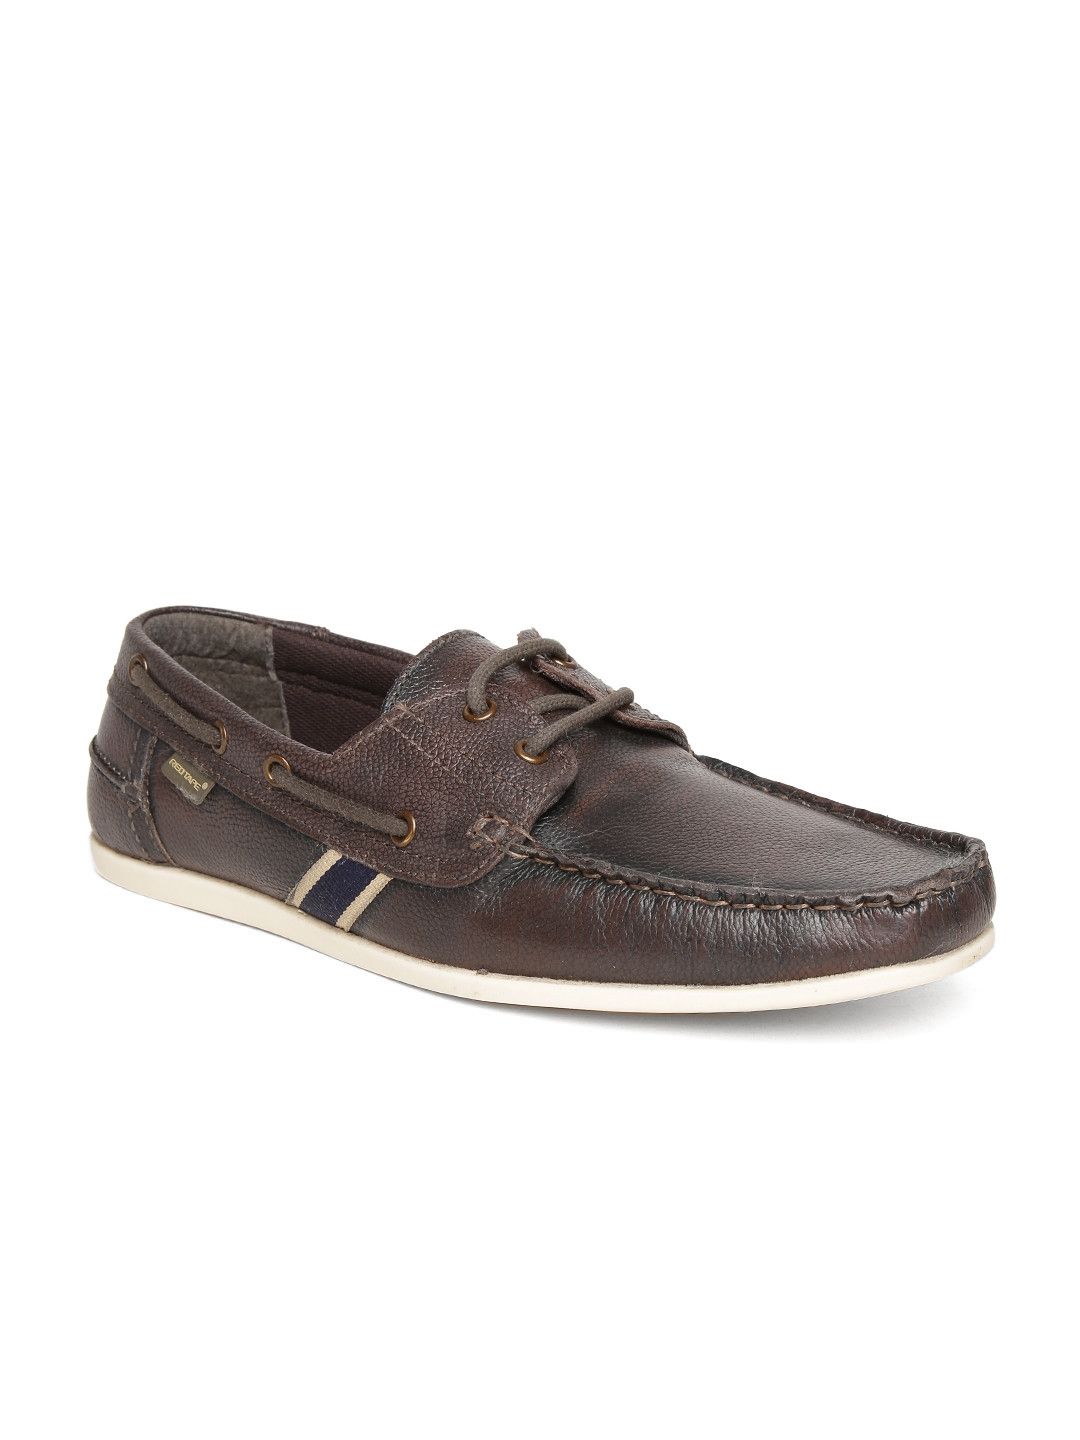 b8b7afd21a0 Buy Red Tape Men Coffee Brown Leather Boat Shoes - Casual Shoes for ...